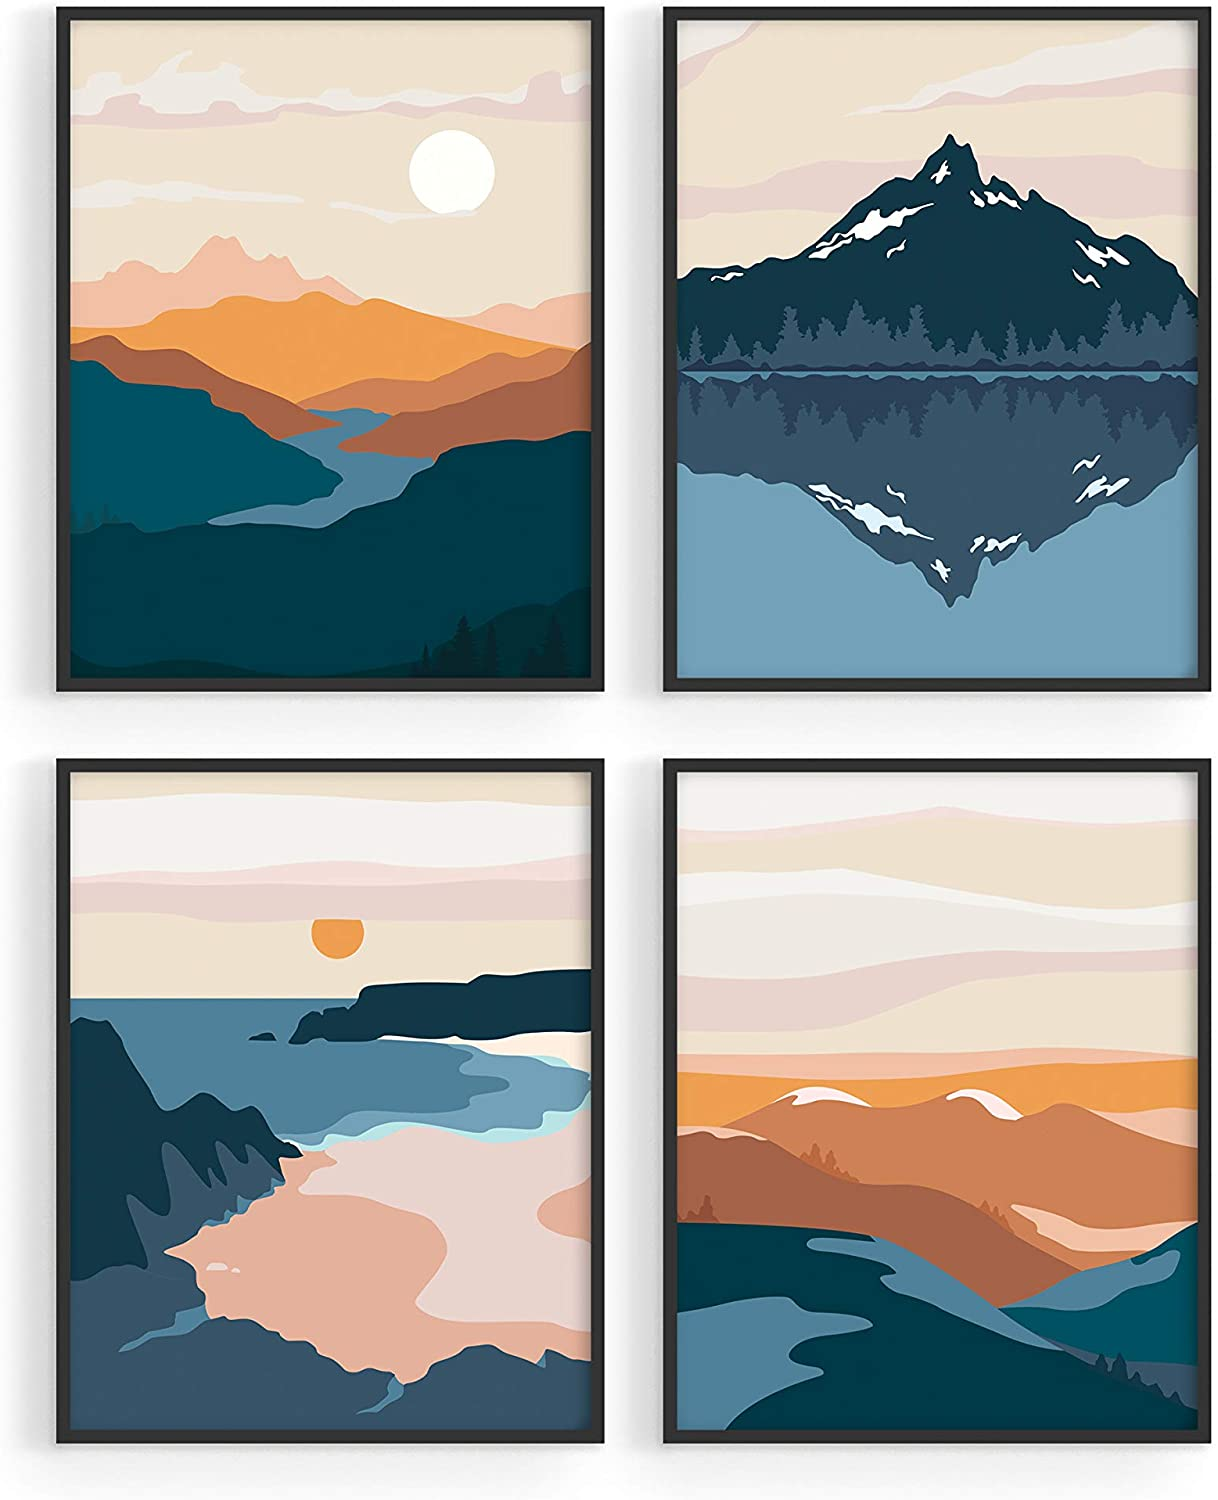 Nature Wall Art Prints Landscape Mountain Decor   by Haus and Hues    Mid Century Wall Art   Modern Wall Decor Mountain Wall Art   Mountain Art  Wall ...